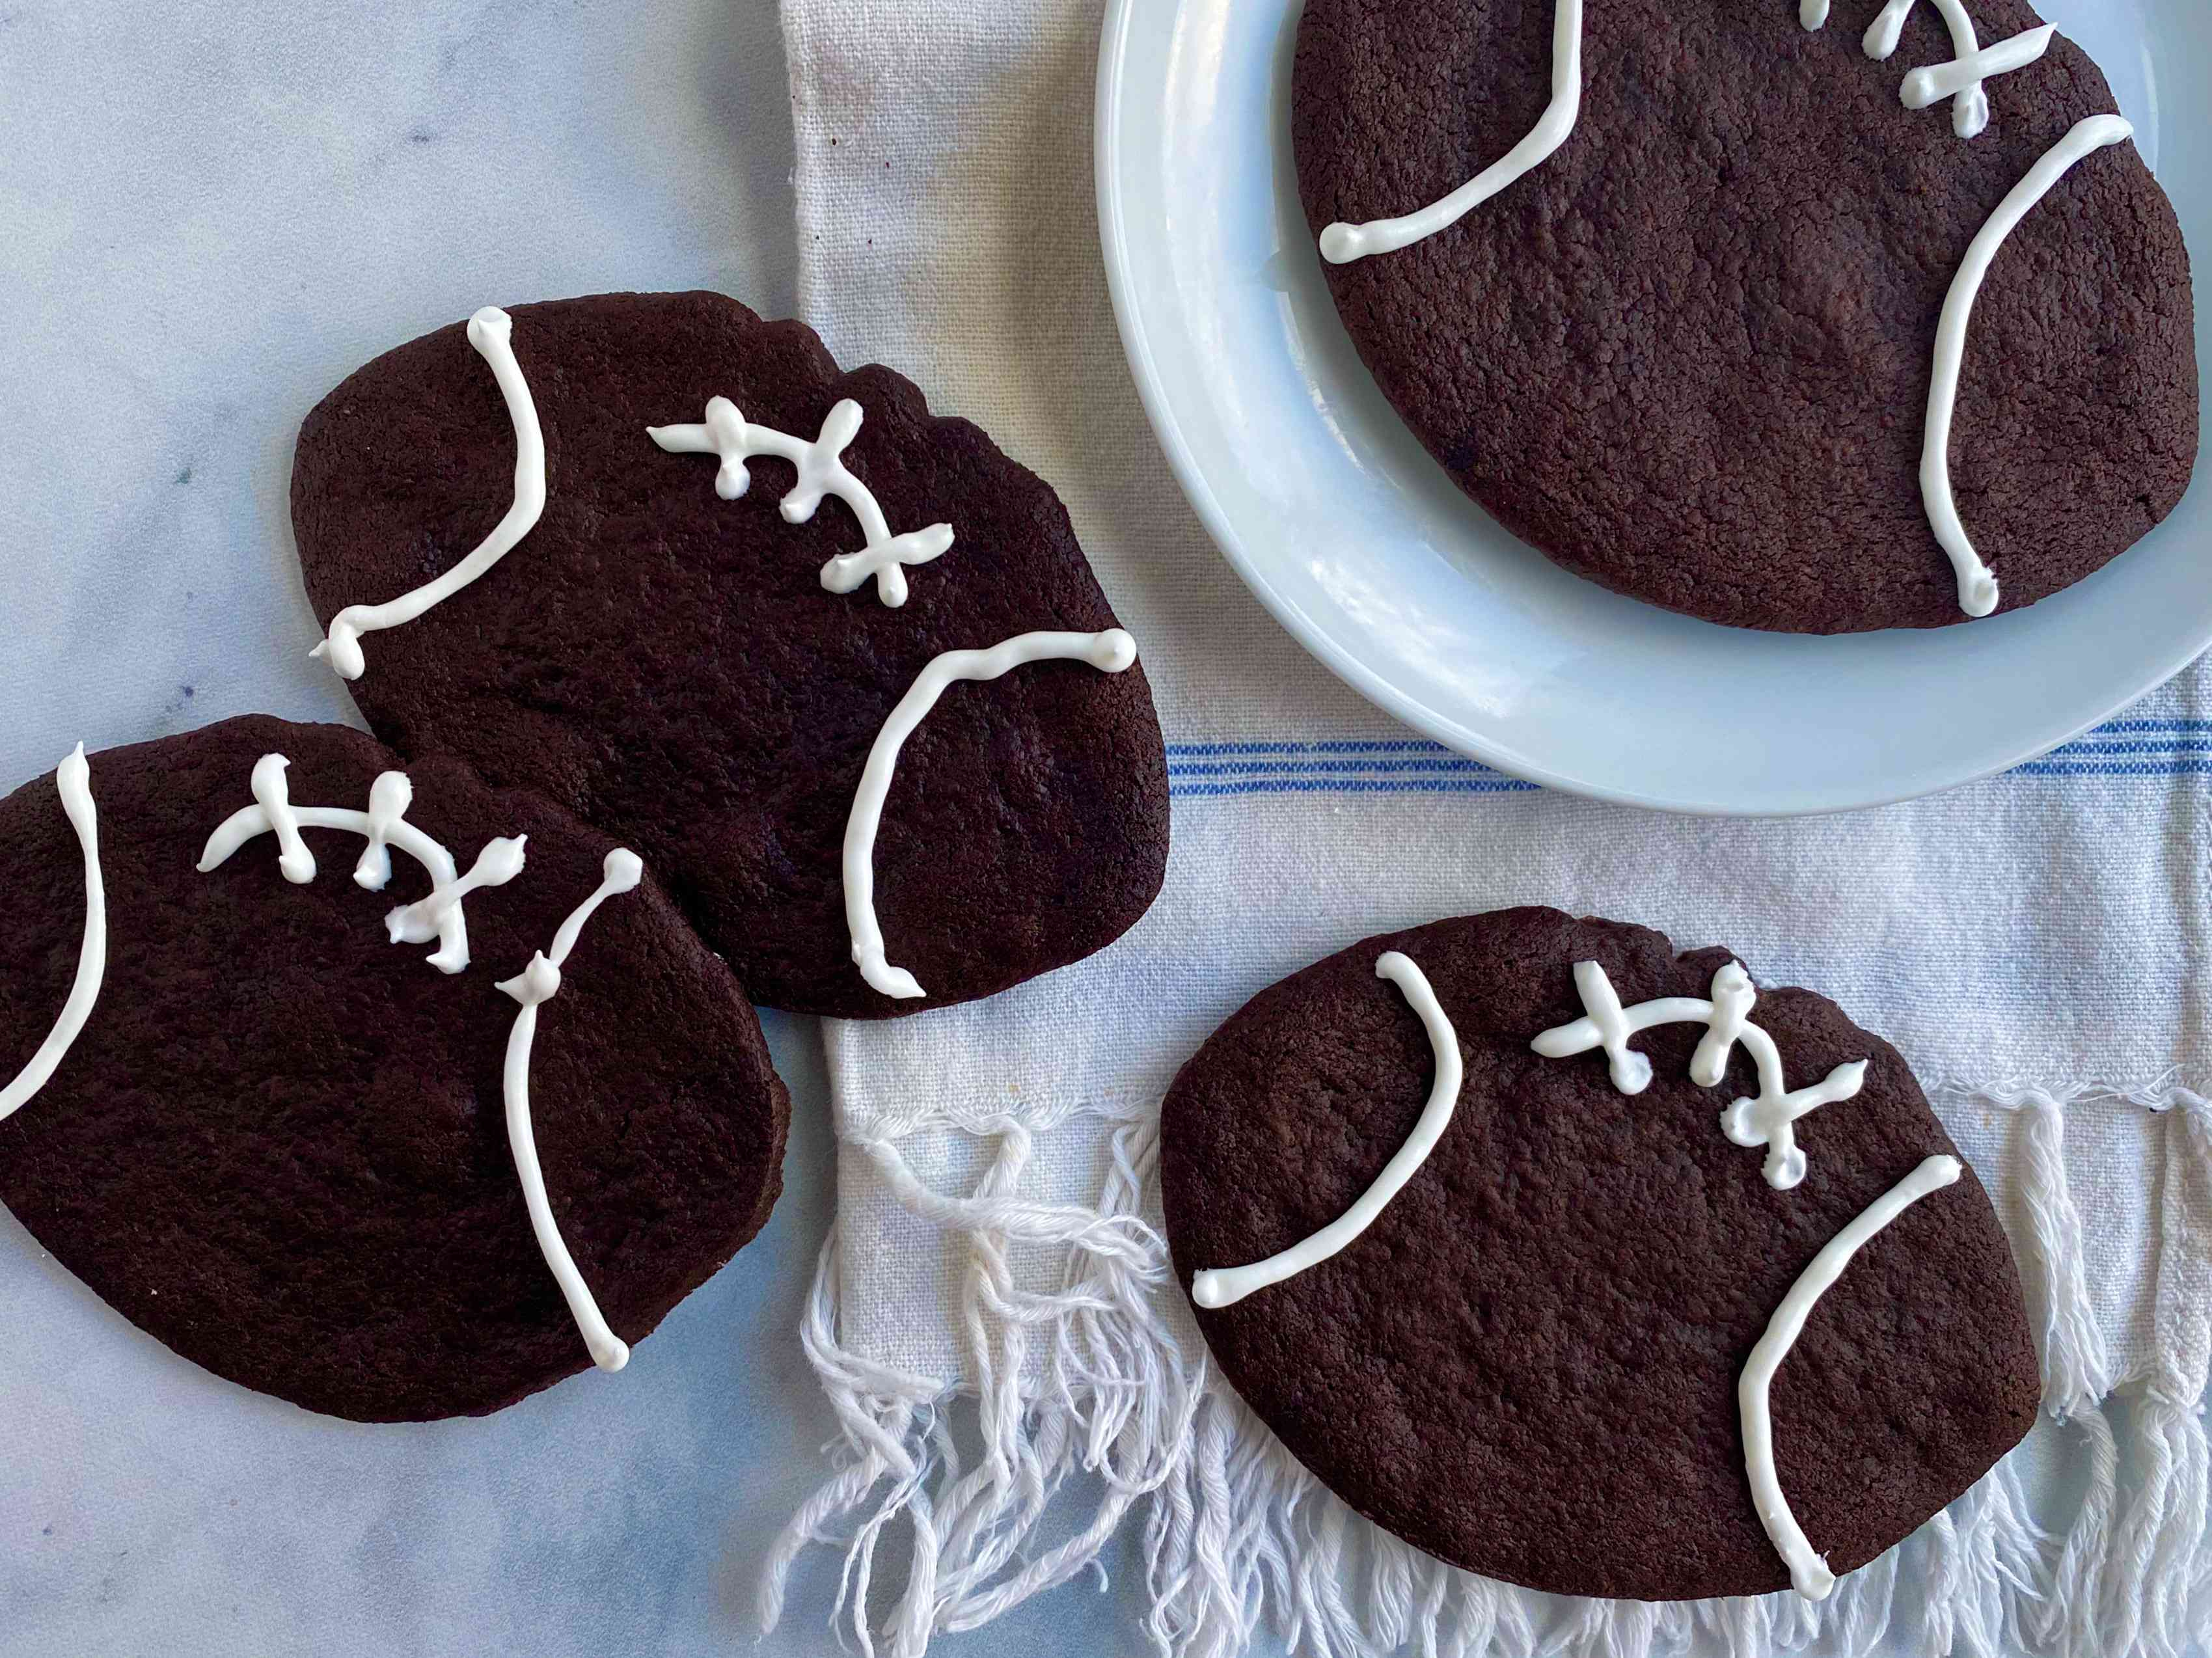 Chocolate football-shaped cookies with icing laces